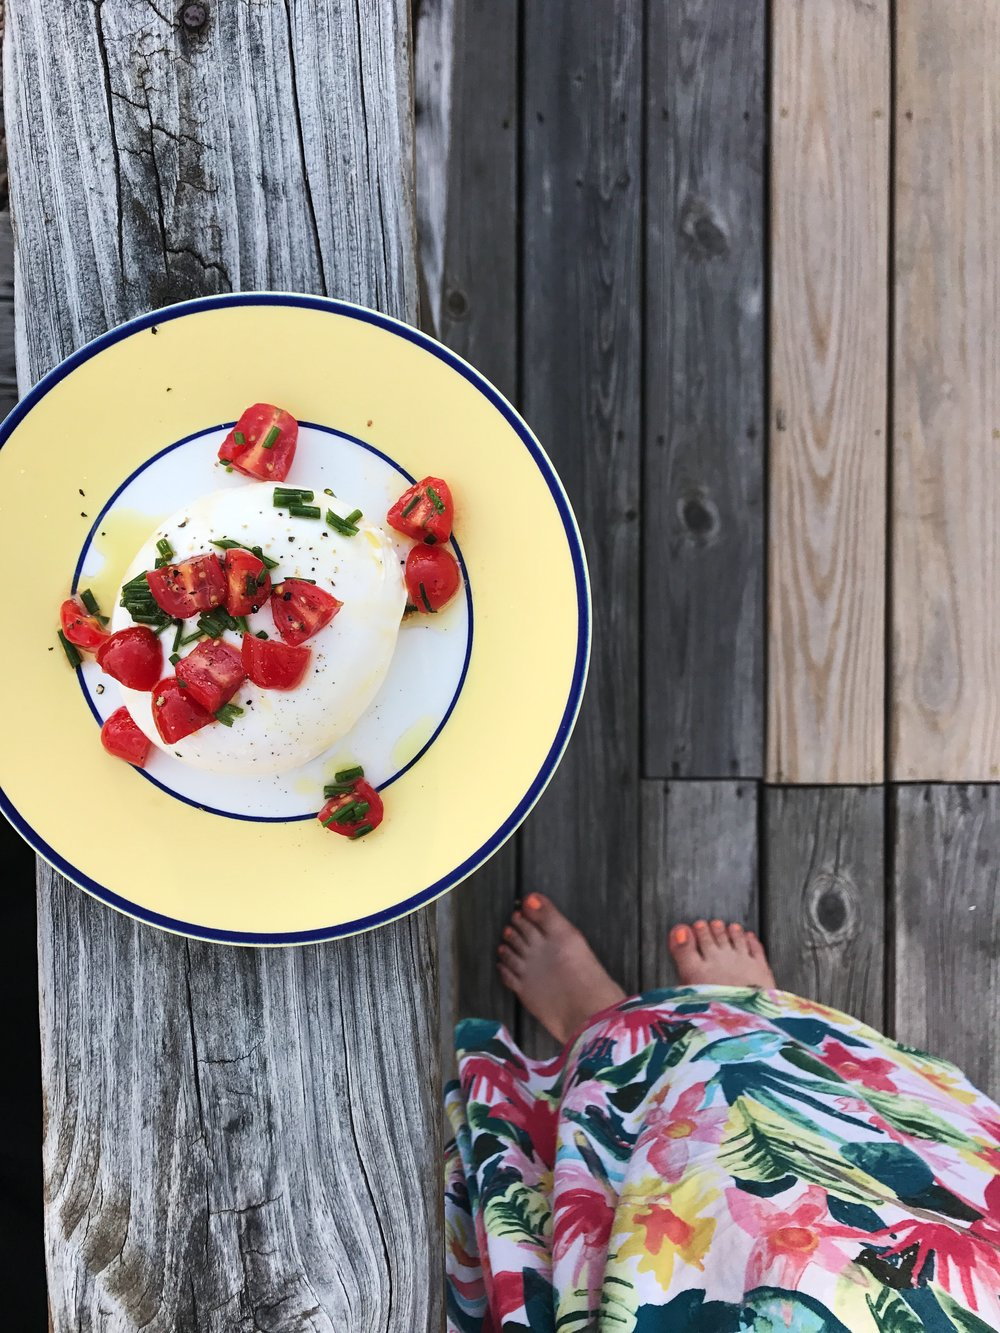 Burrata from  The Cheese Shoppe  on LBI with Extra Virgin Olive Oil, tomatoes and chives.